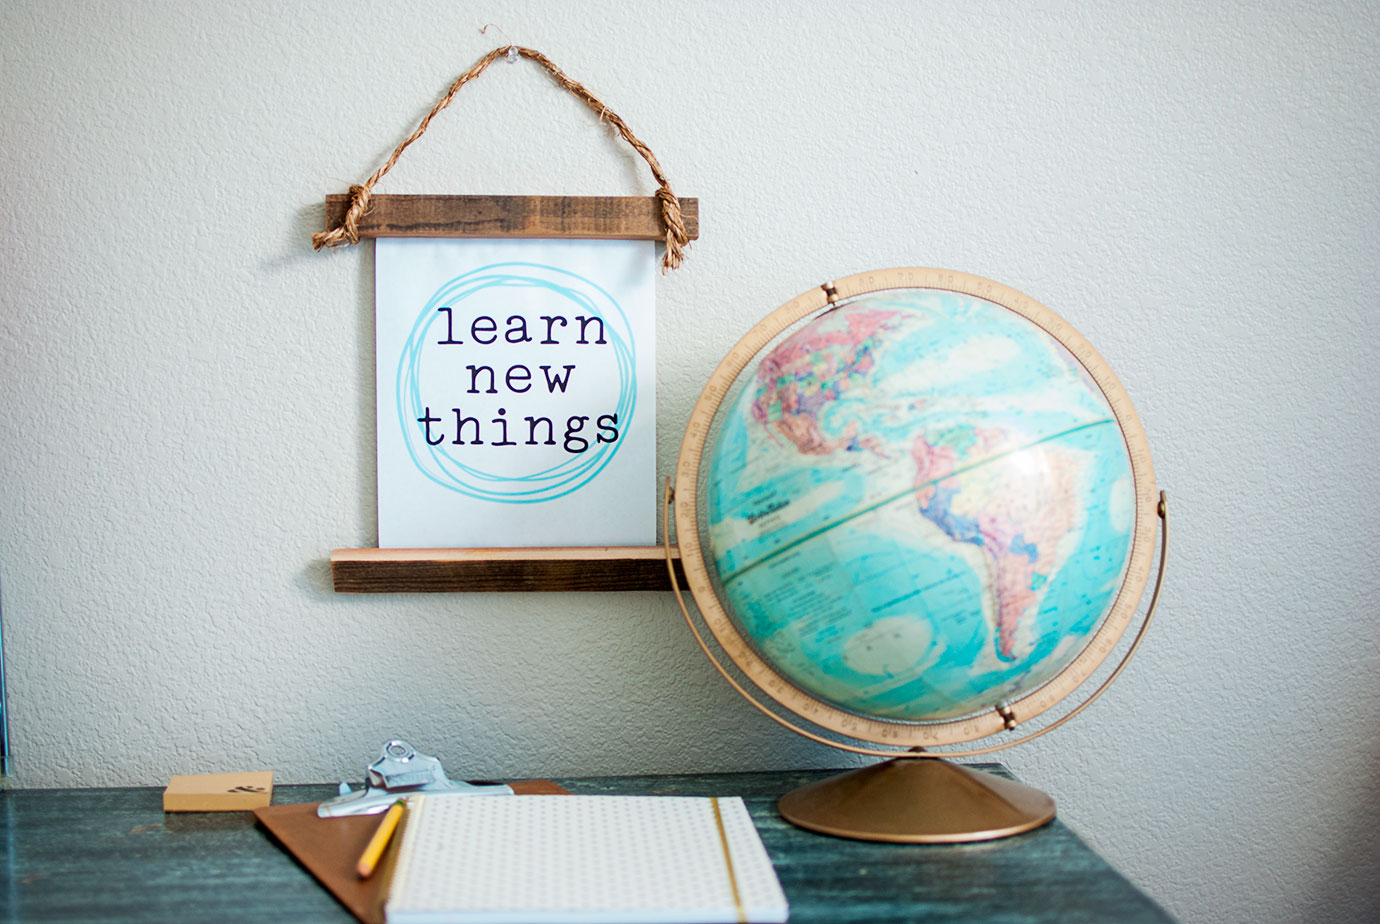 Learn New Things Printable and DIY Project on a desk with a globe and notebook